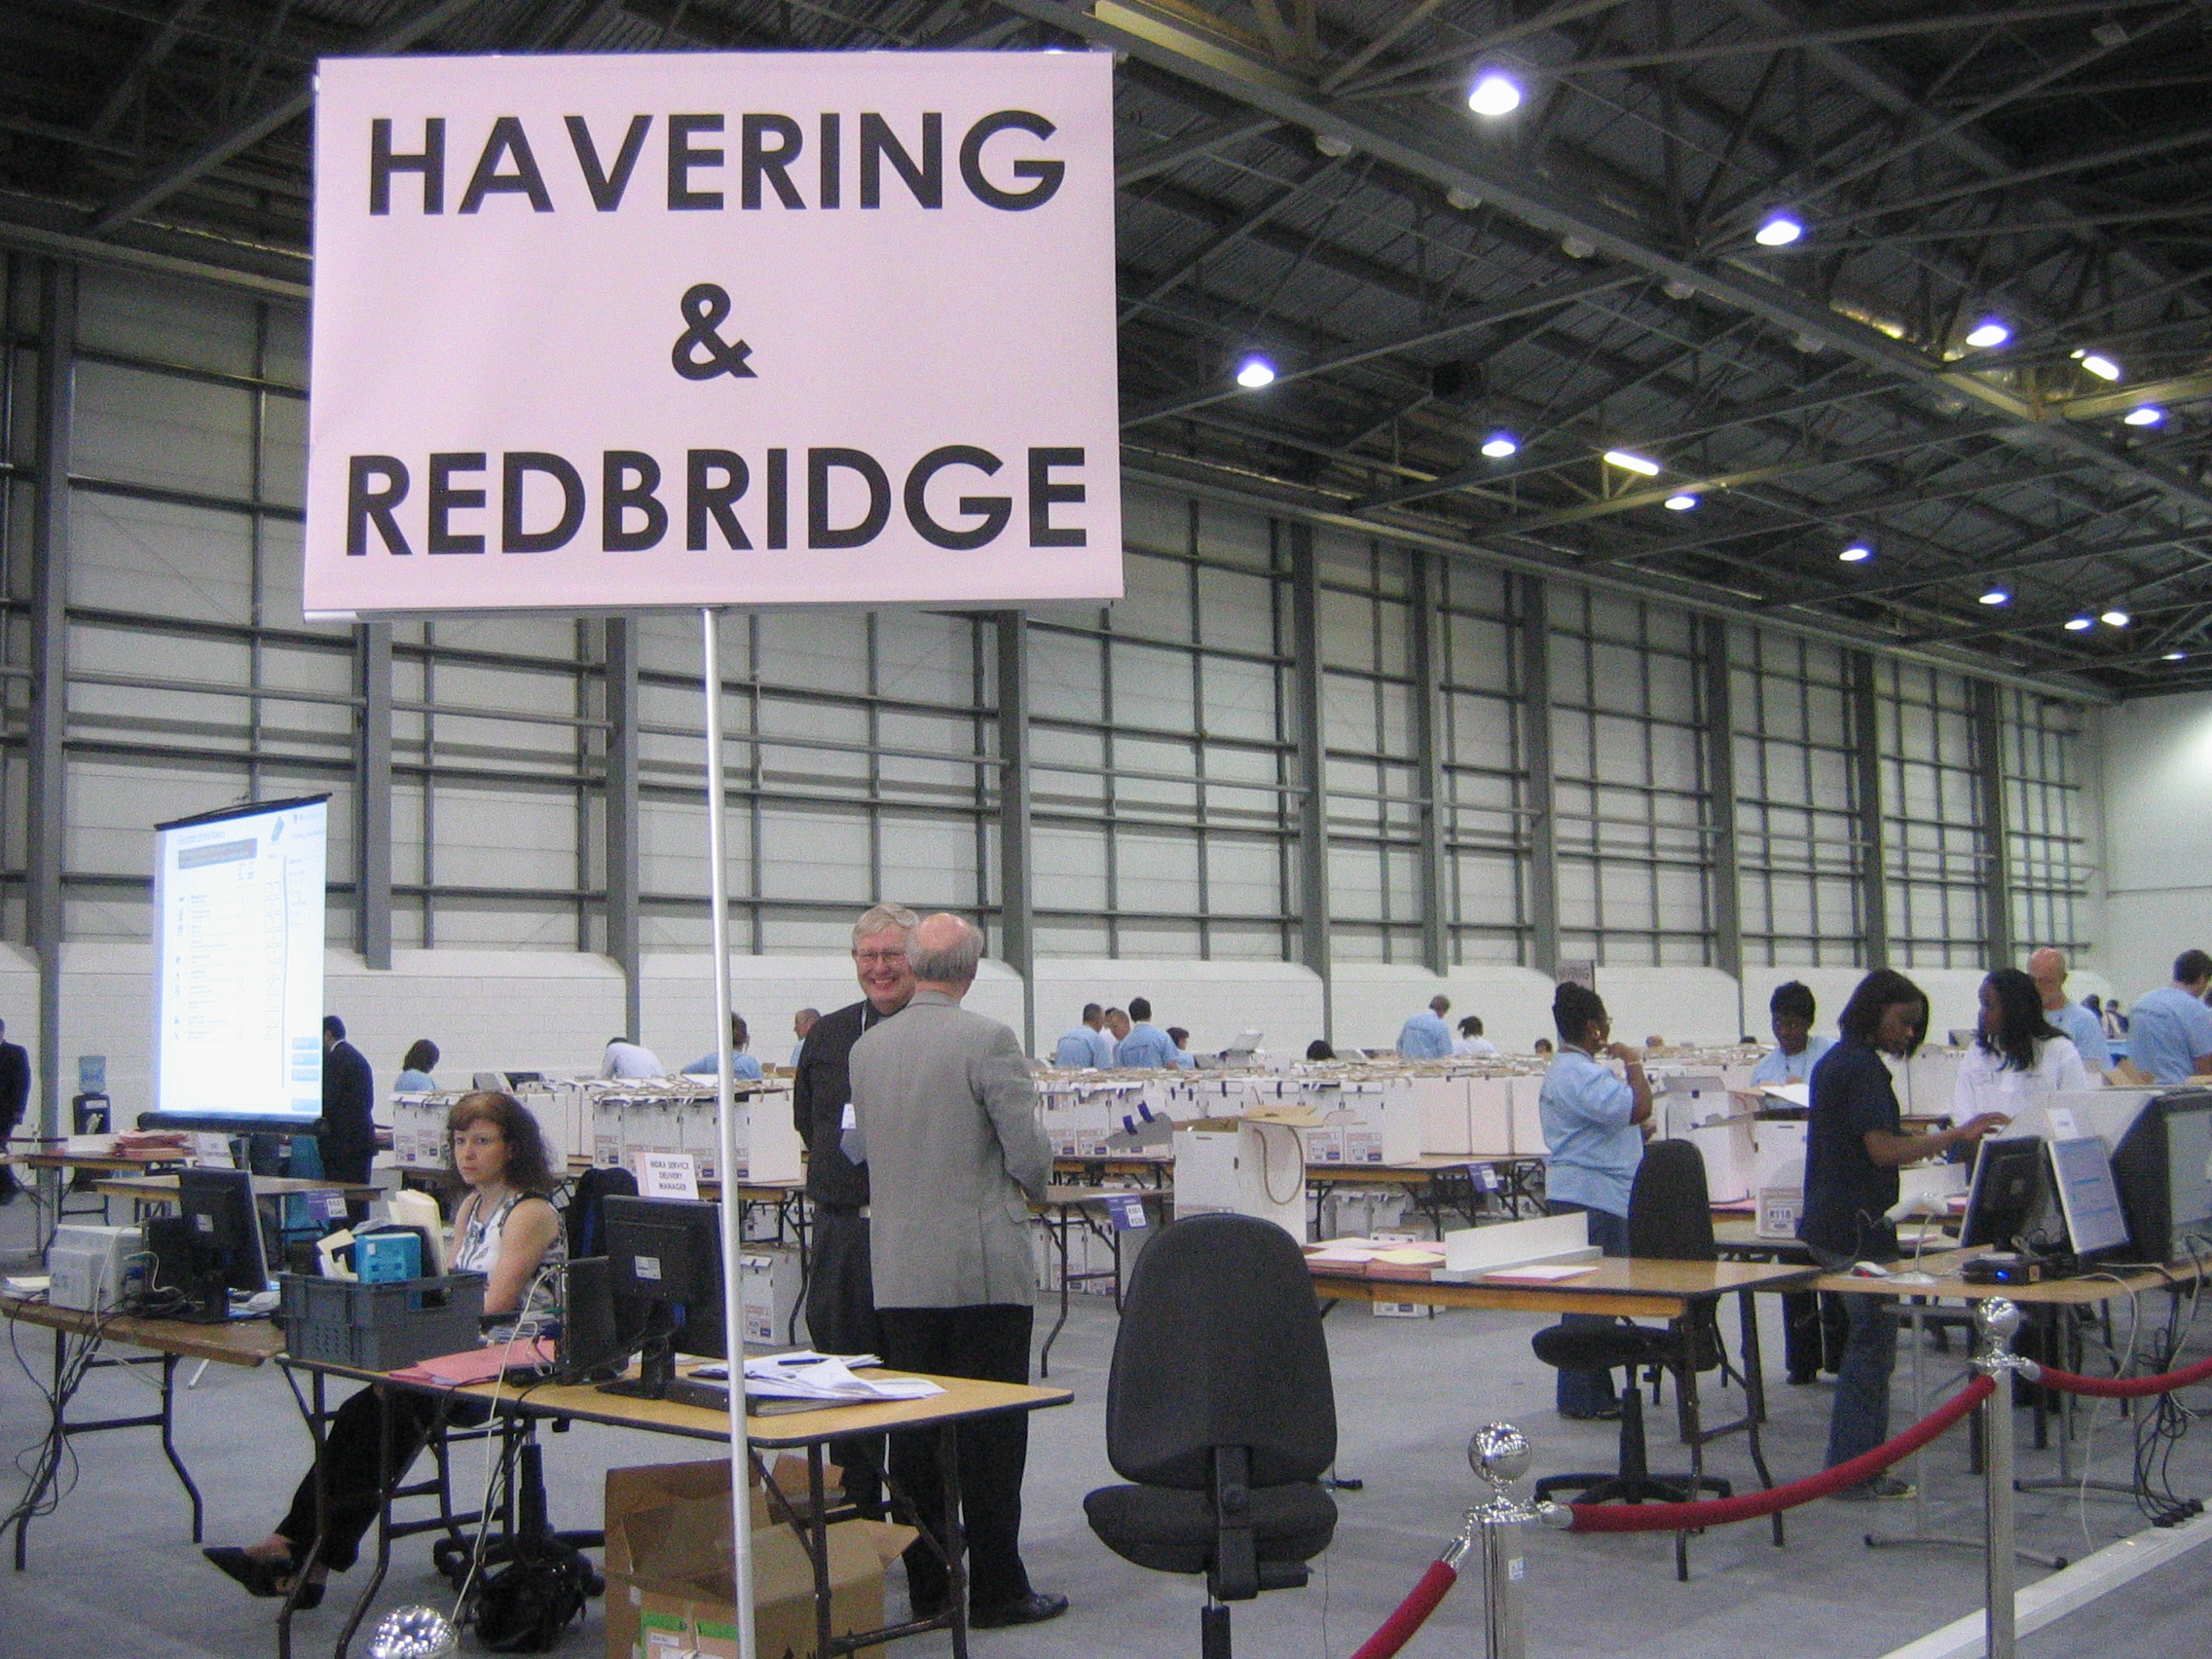 File:Havering and Redbridge count signage.jpg - Wikimedia Commons